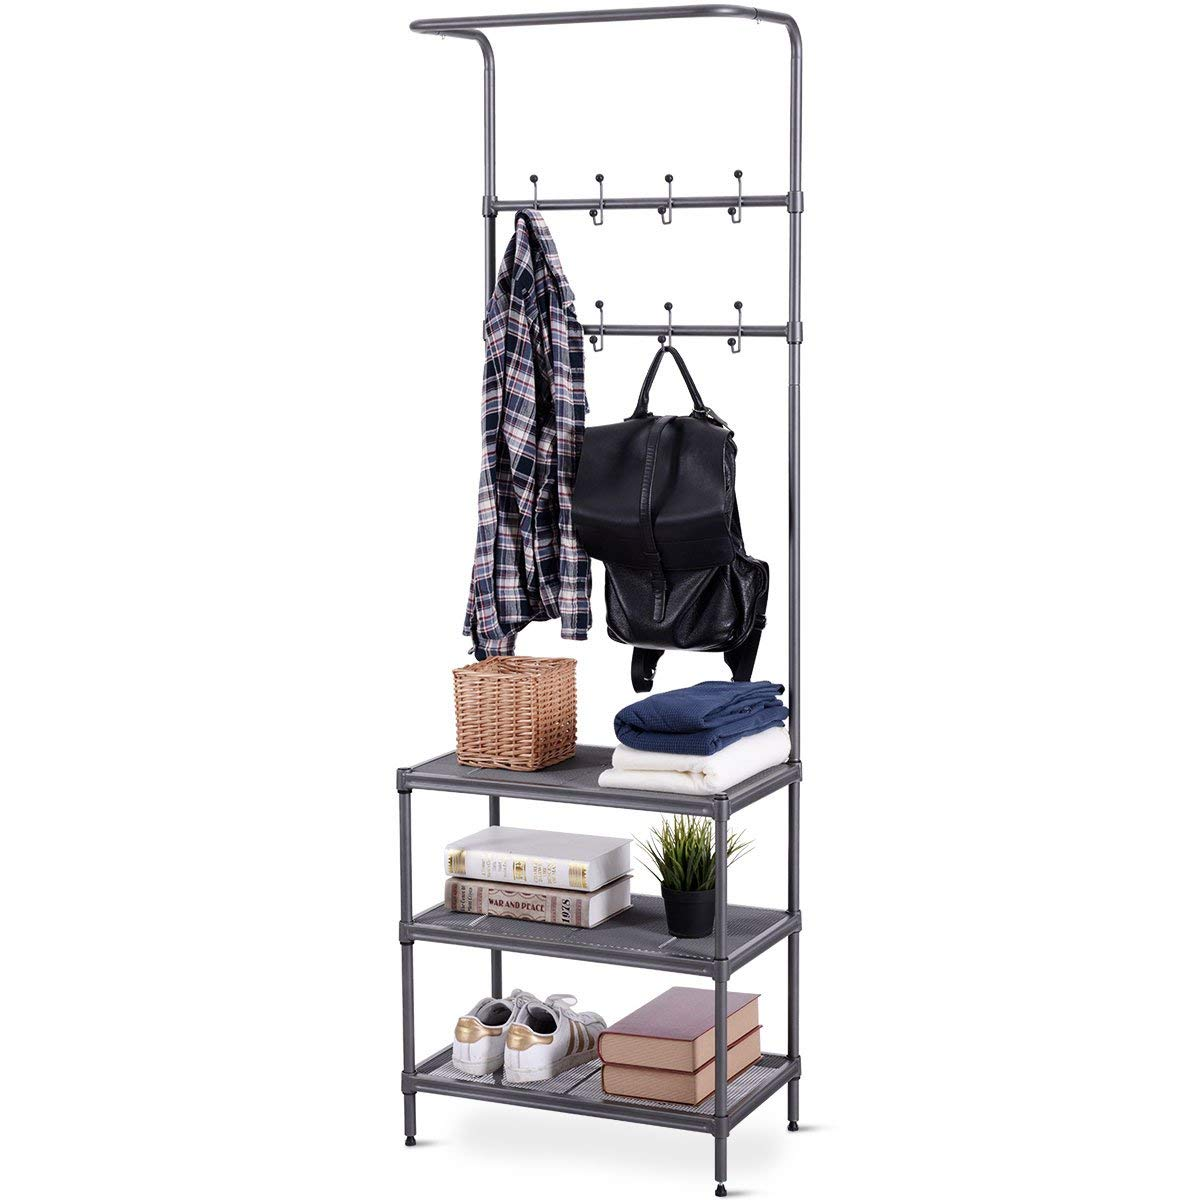 Giantex 3 Tier Entryway Coat Hat Shoes Rack Metal Storage Shelf Bedroom Living Room Office Storage Rack w/ 16 Hooks Adjustable Feet 2-in 1 Design, Easy Assembly